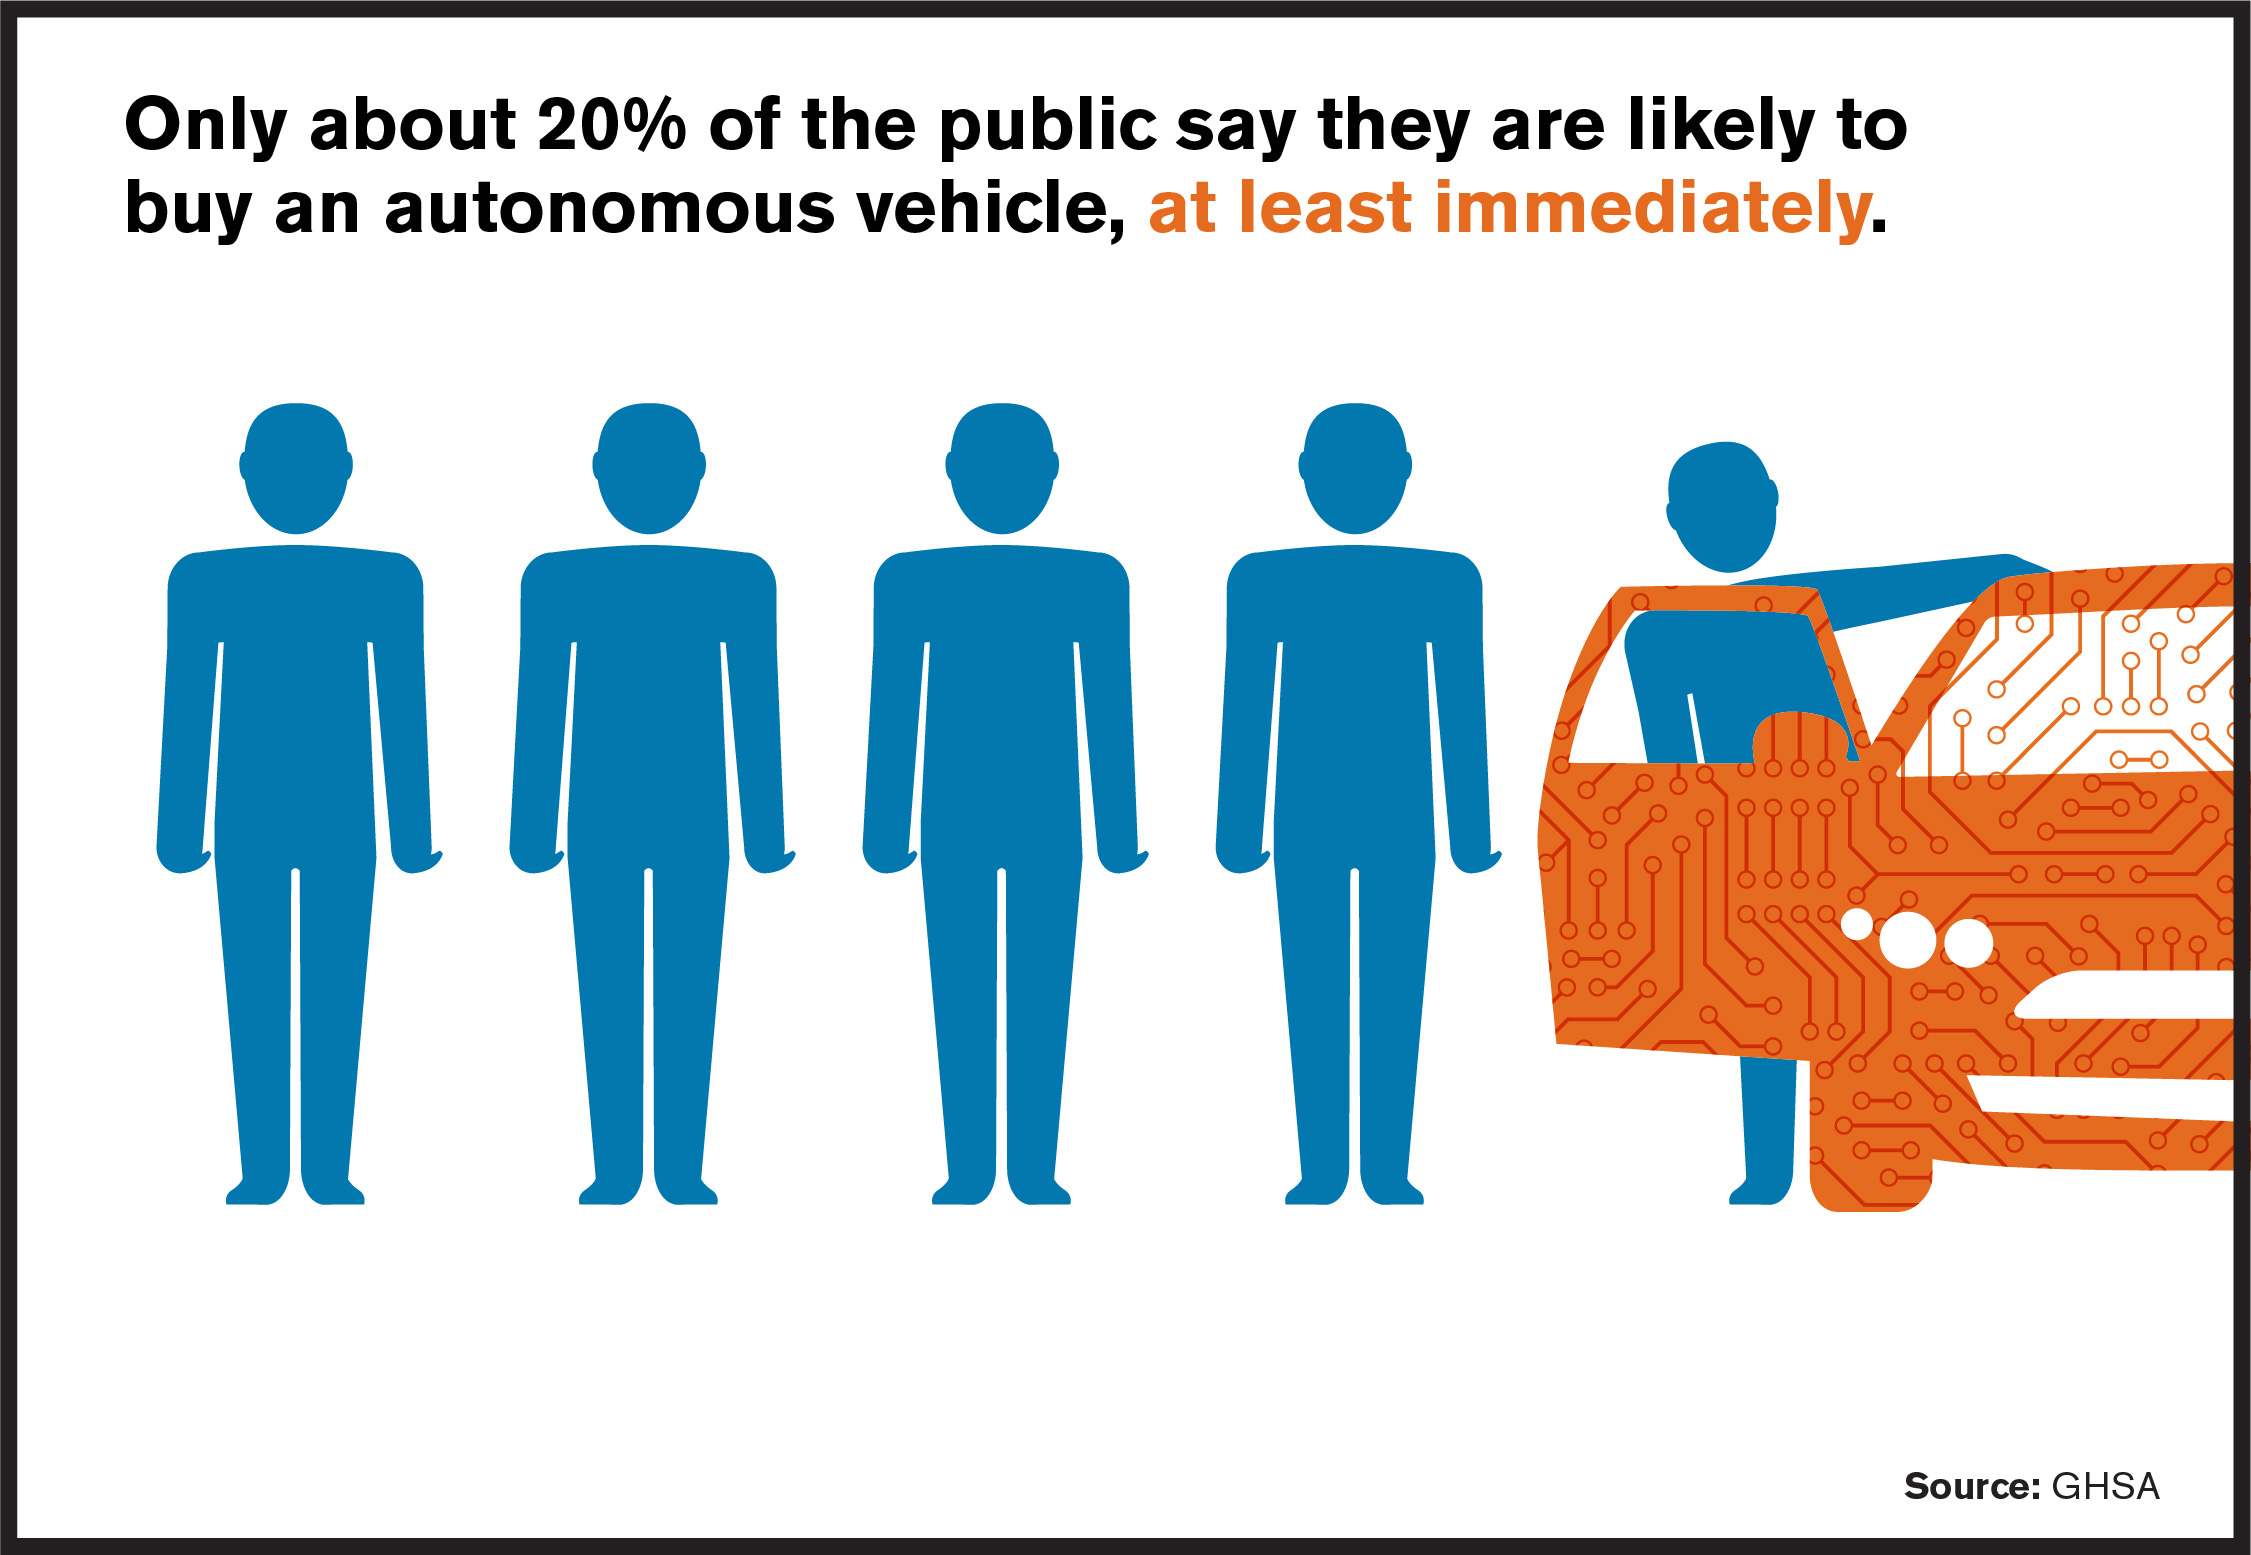 Only 20 percent of the public say they are willing to buy an autonomous vehicle immediately